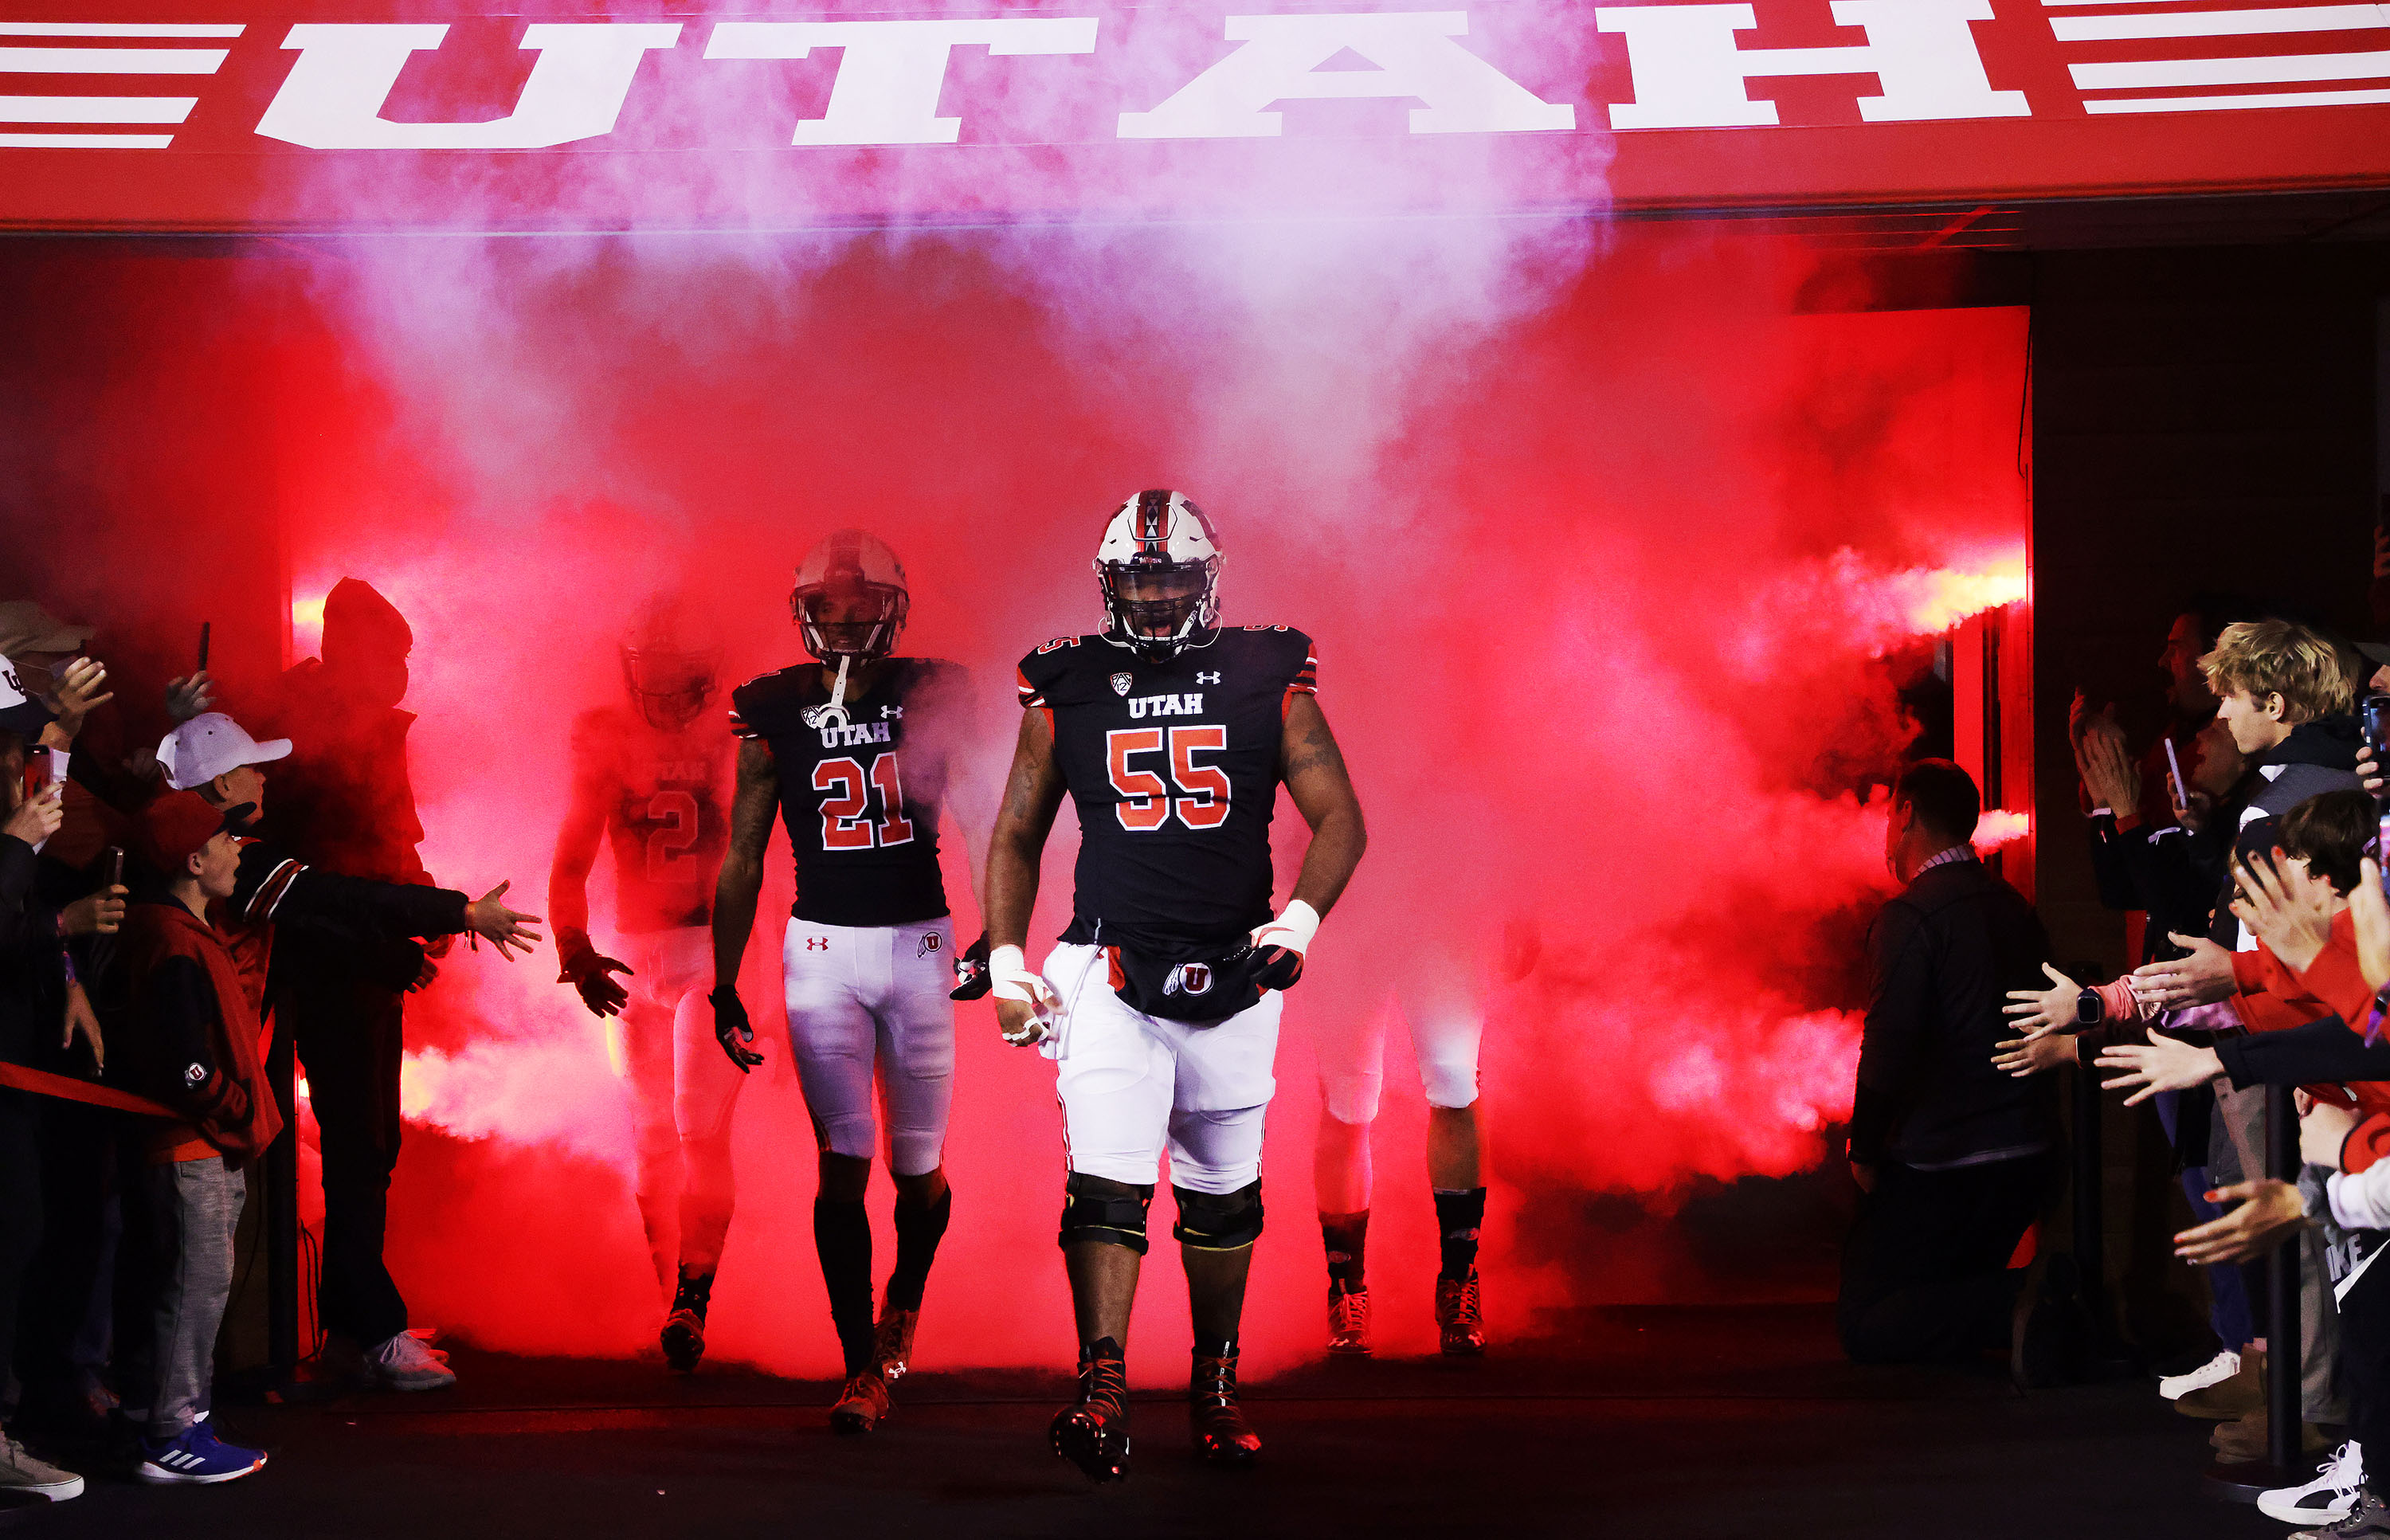 The Utah Utes take the field for their game against the Arizona State Sun Devils in Salt Lake City Saturday, Oct. 16, 2021.